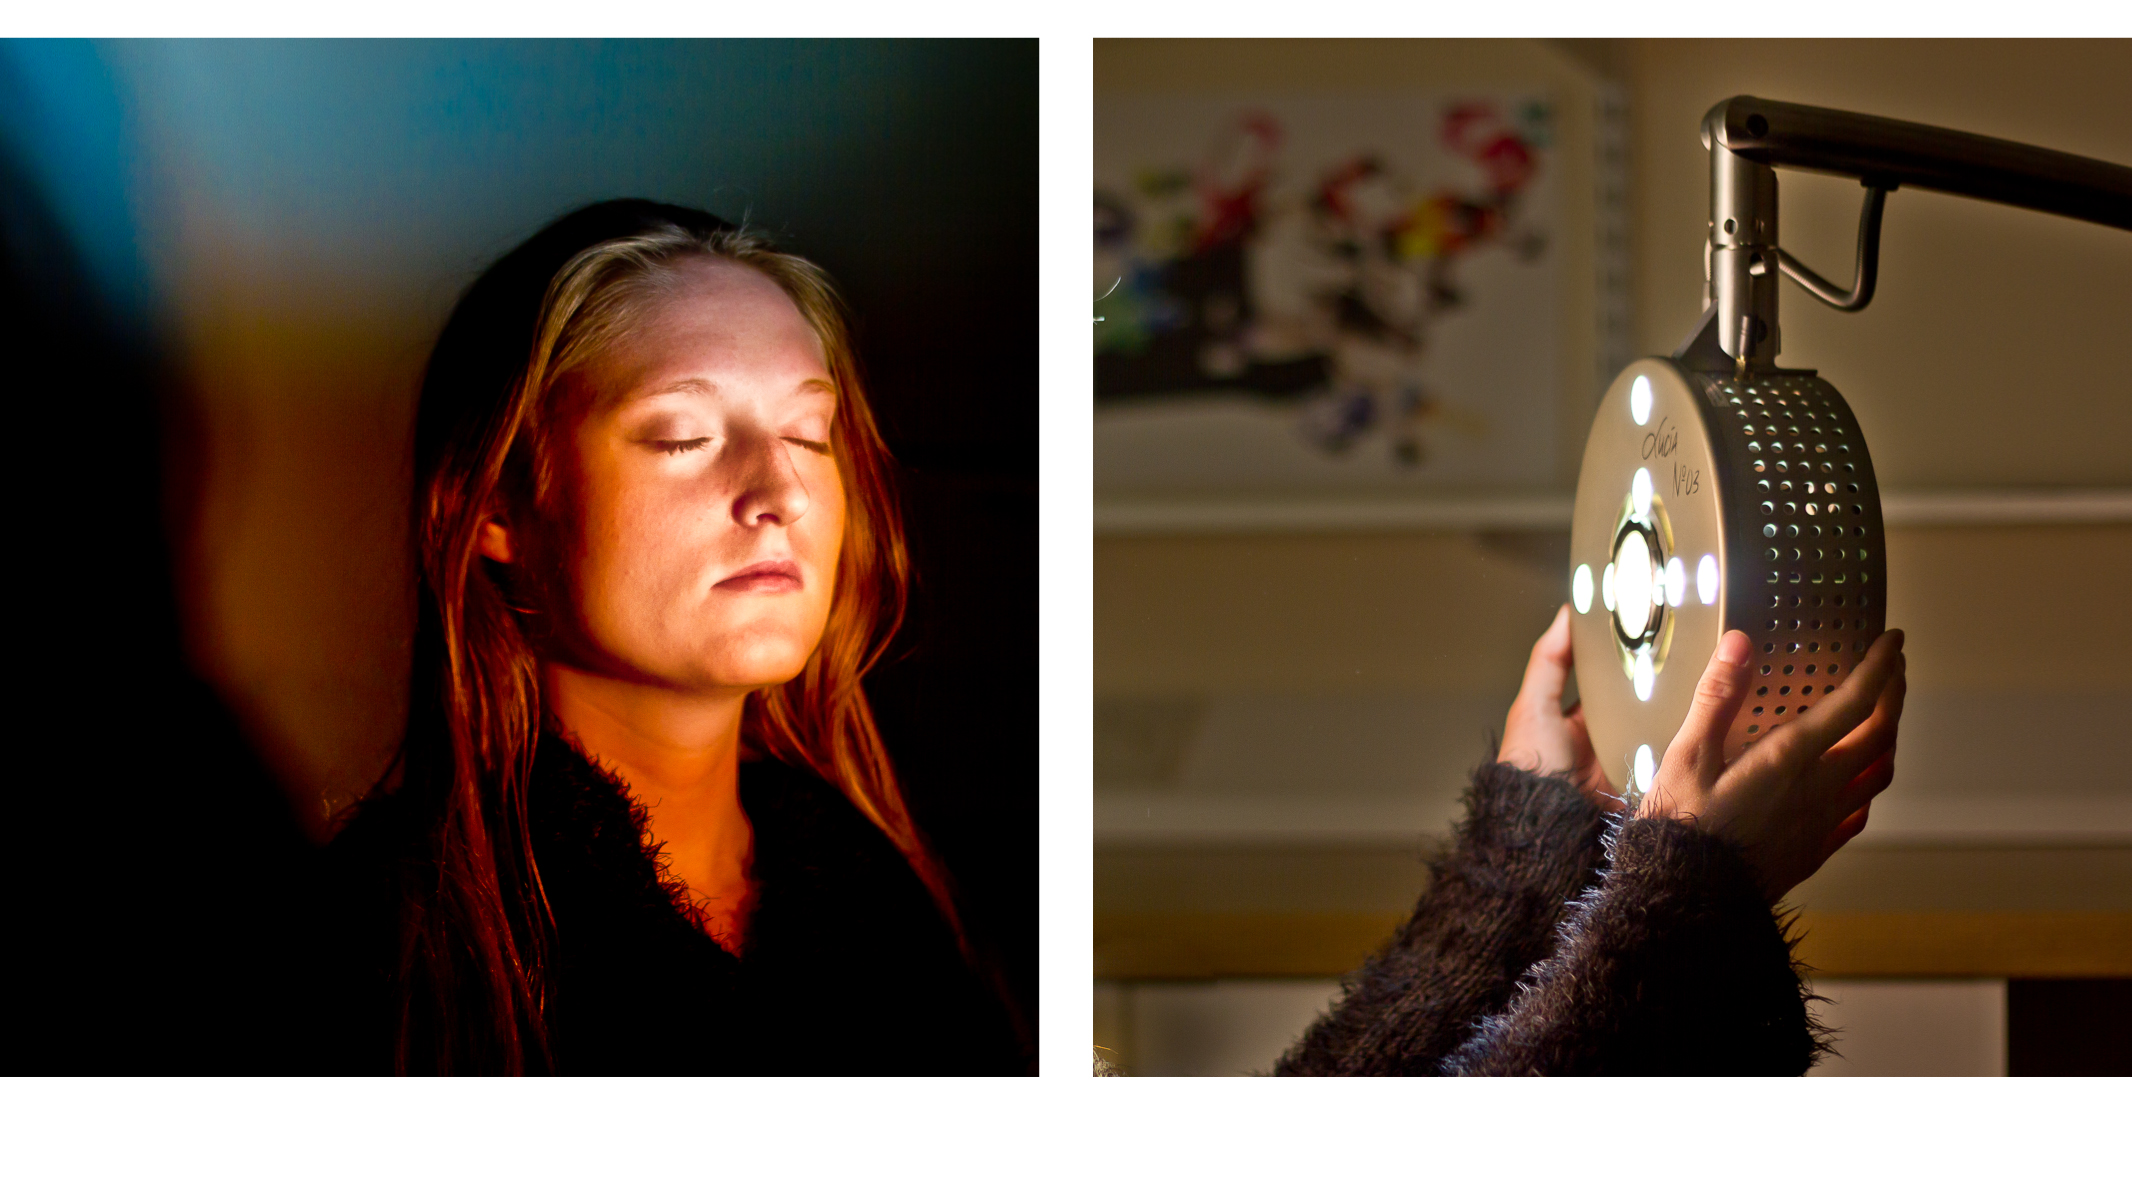 Thresholds of the NMind - Stephanie with Hypnagogic Scanner diptych (high res)